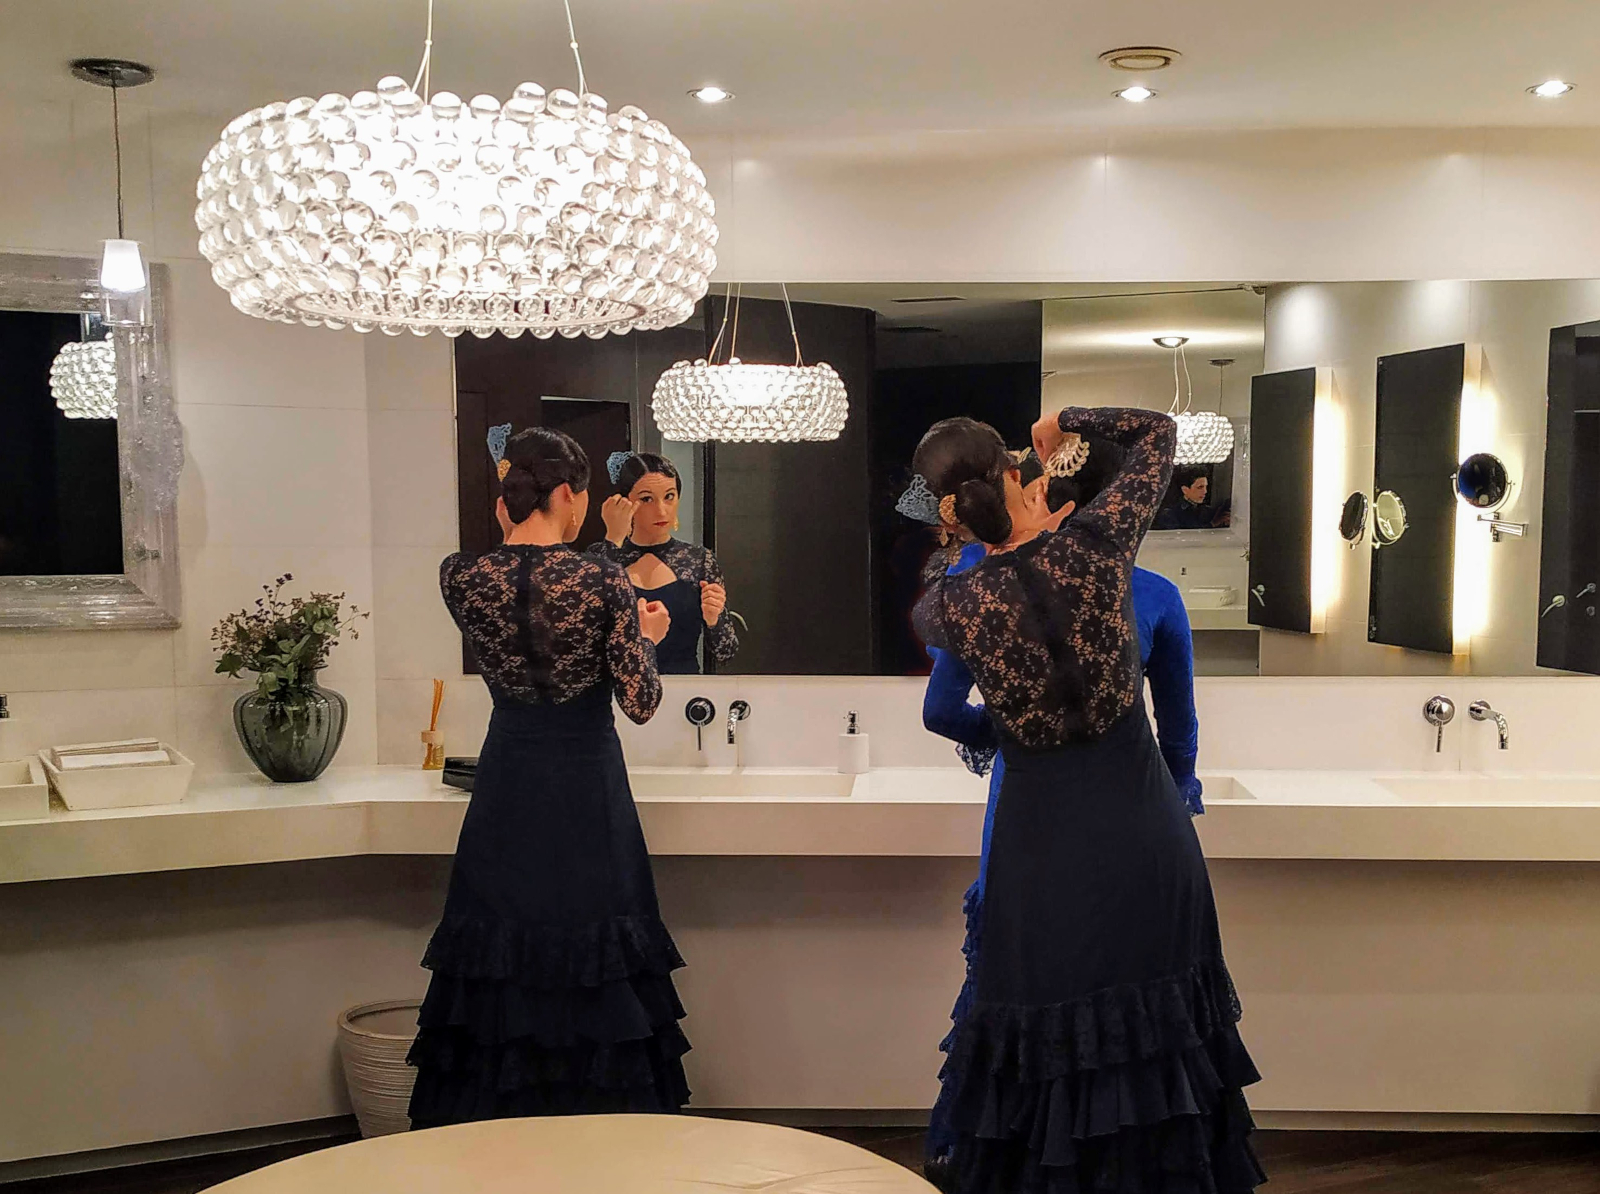 Guests at corporate gala party in Spain immerse themselves in the local culture